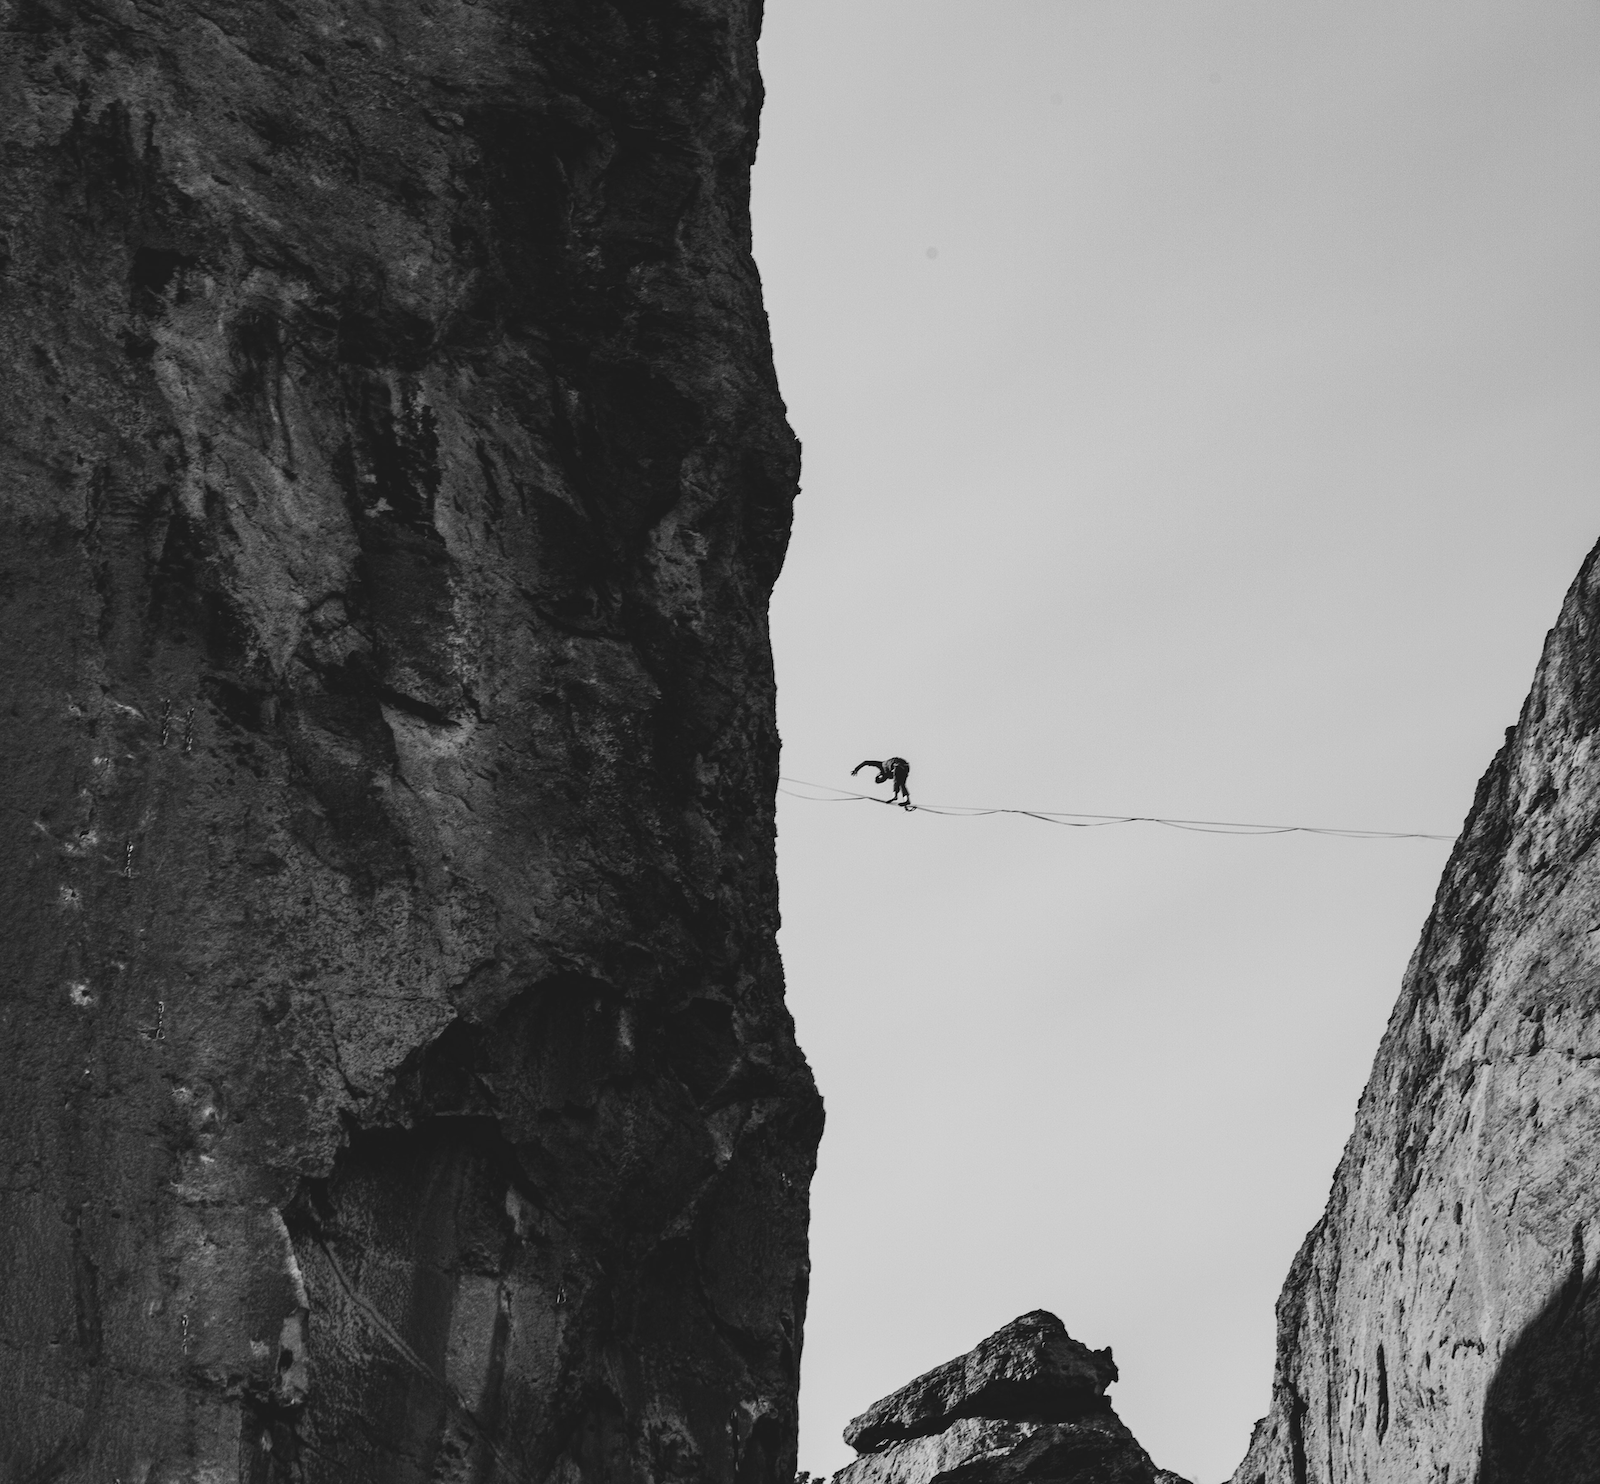 Balancing life is like walking a tightrope. Coaching can help